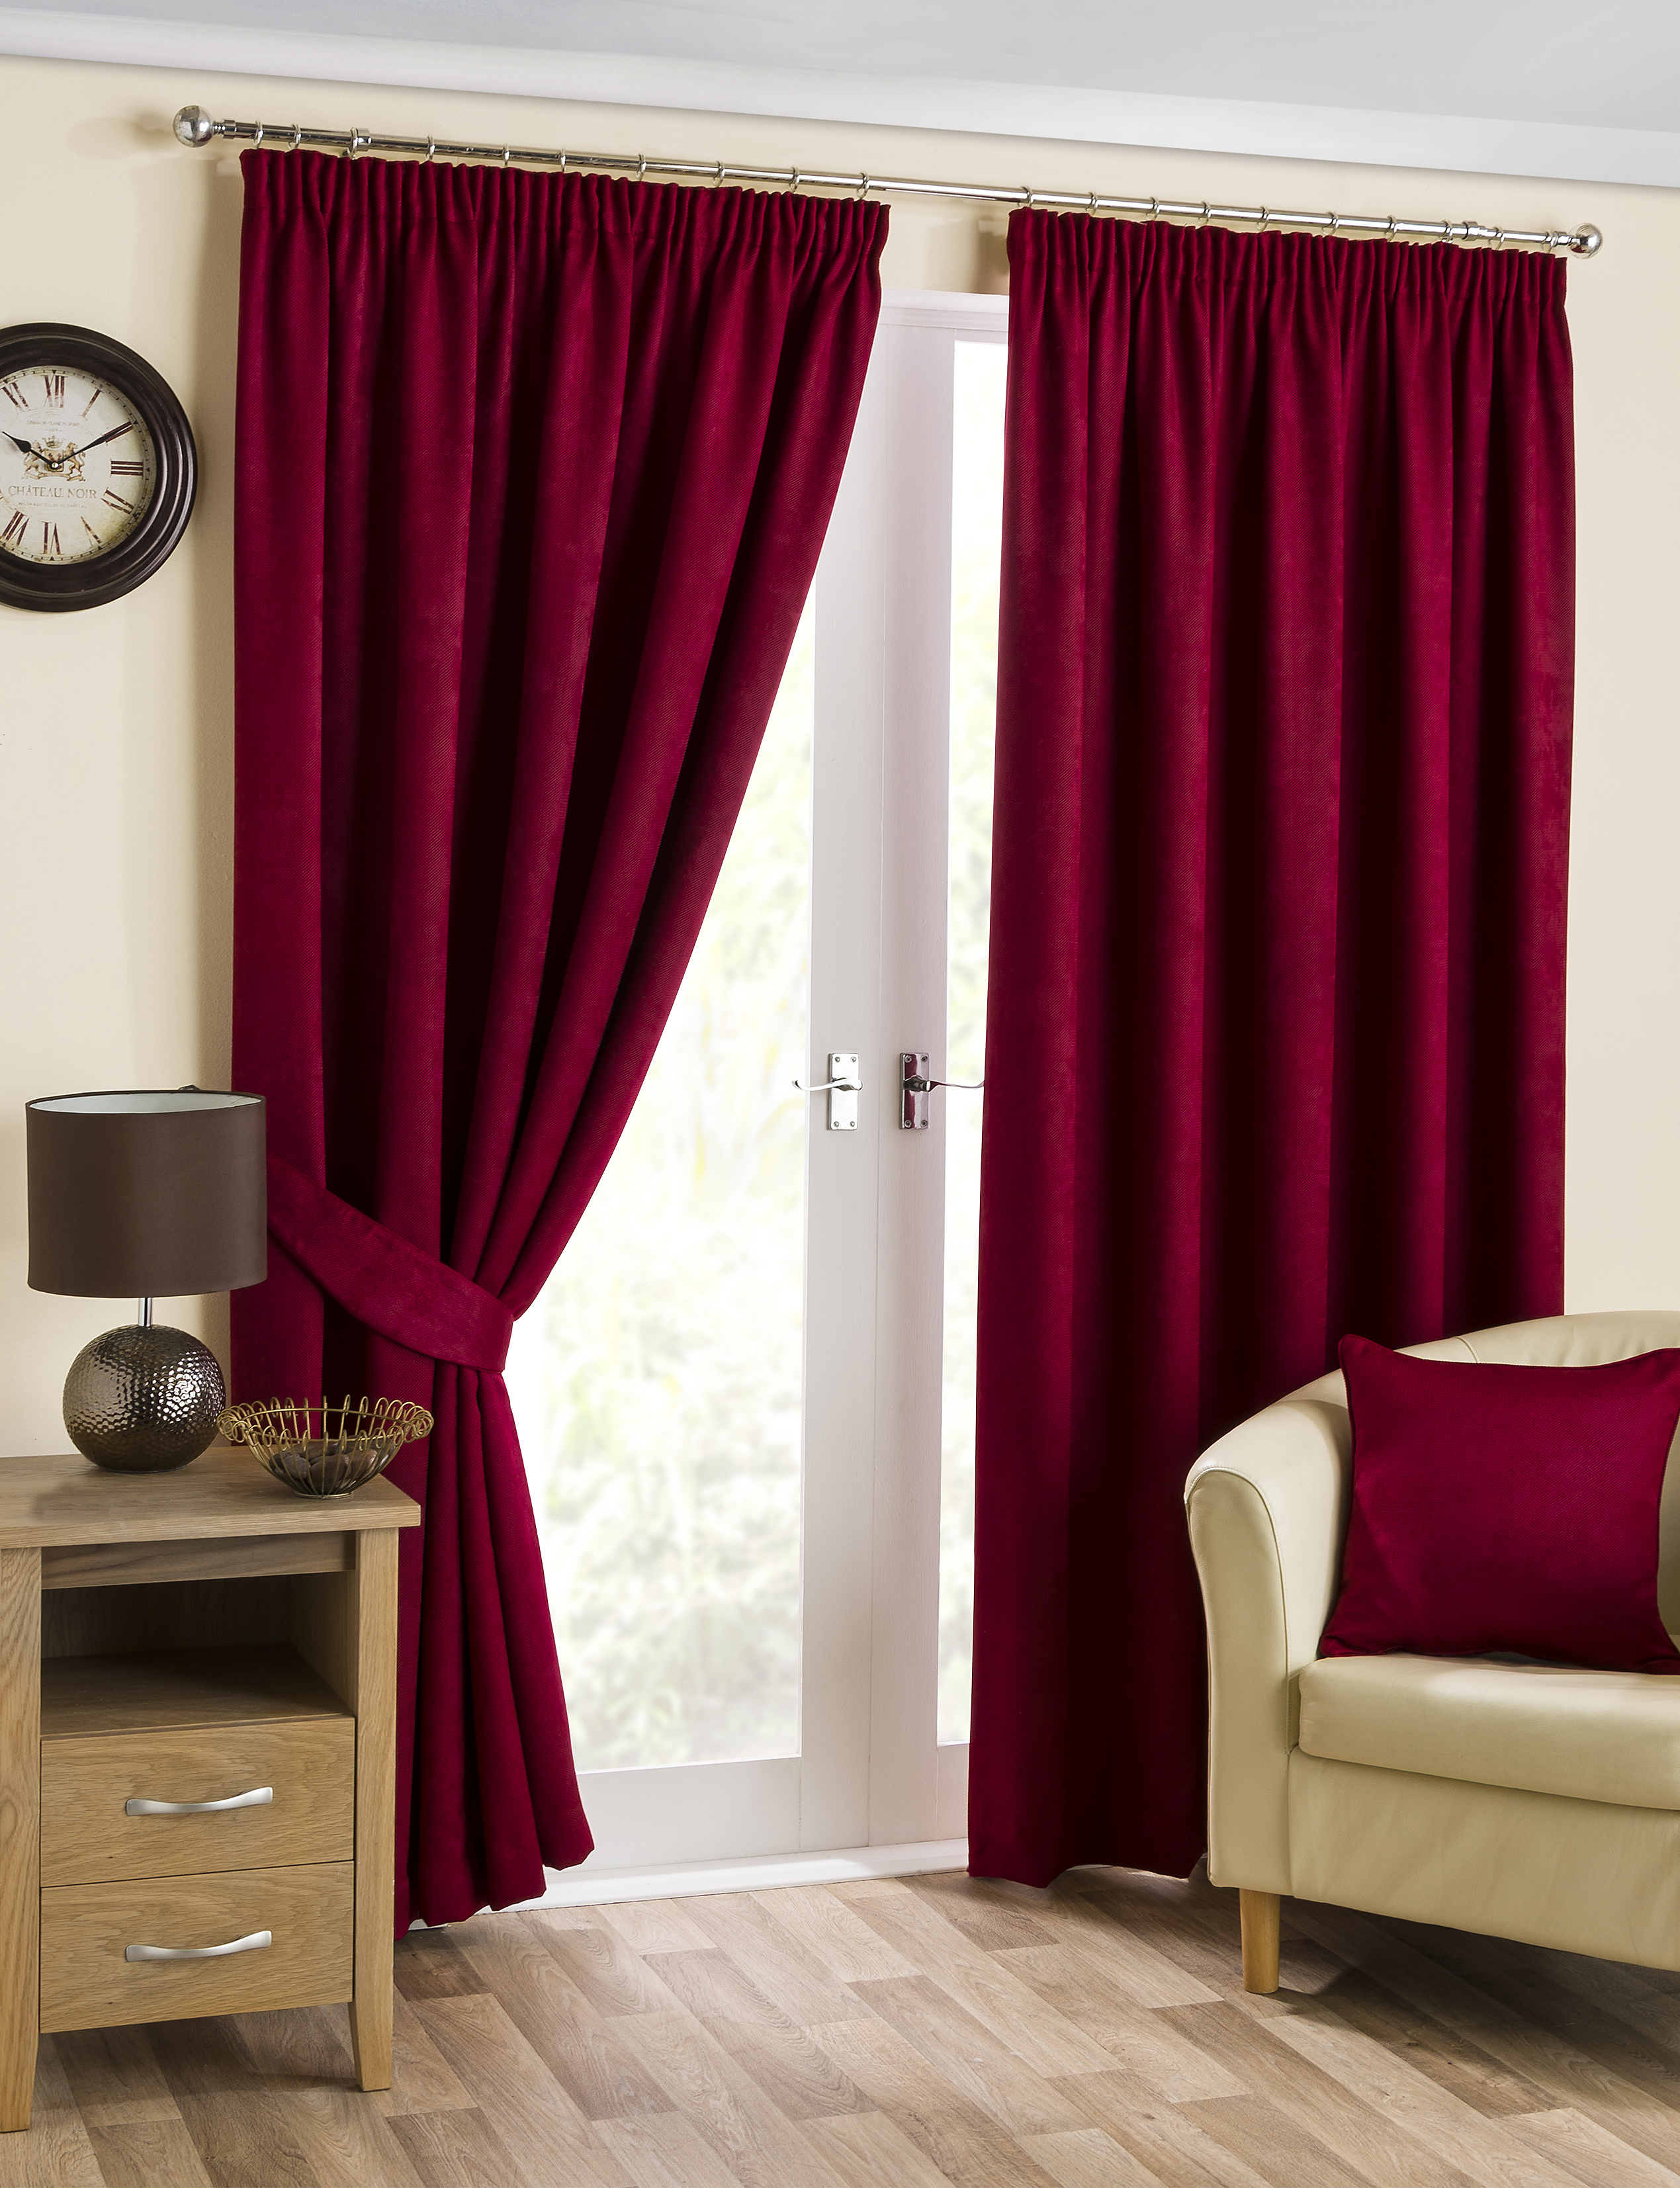 Cranberry Ready Made Luxury Thermal Blackout Curtains Tape Top Soft Fully Lined